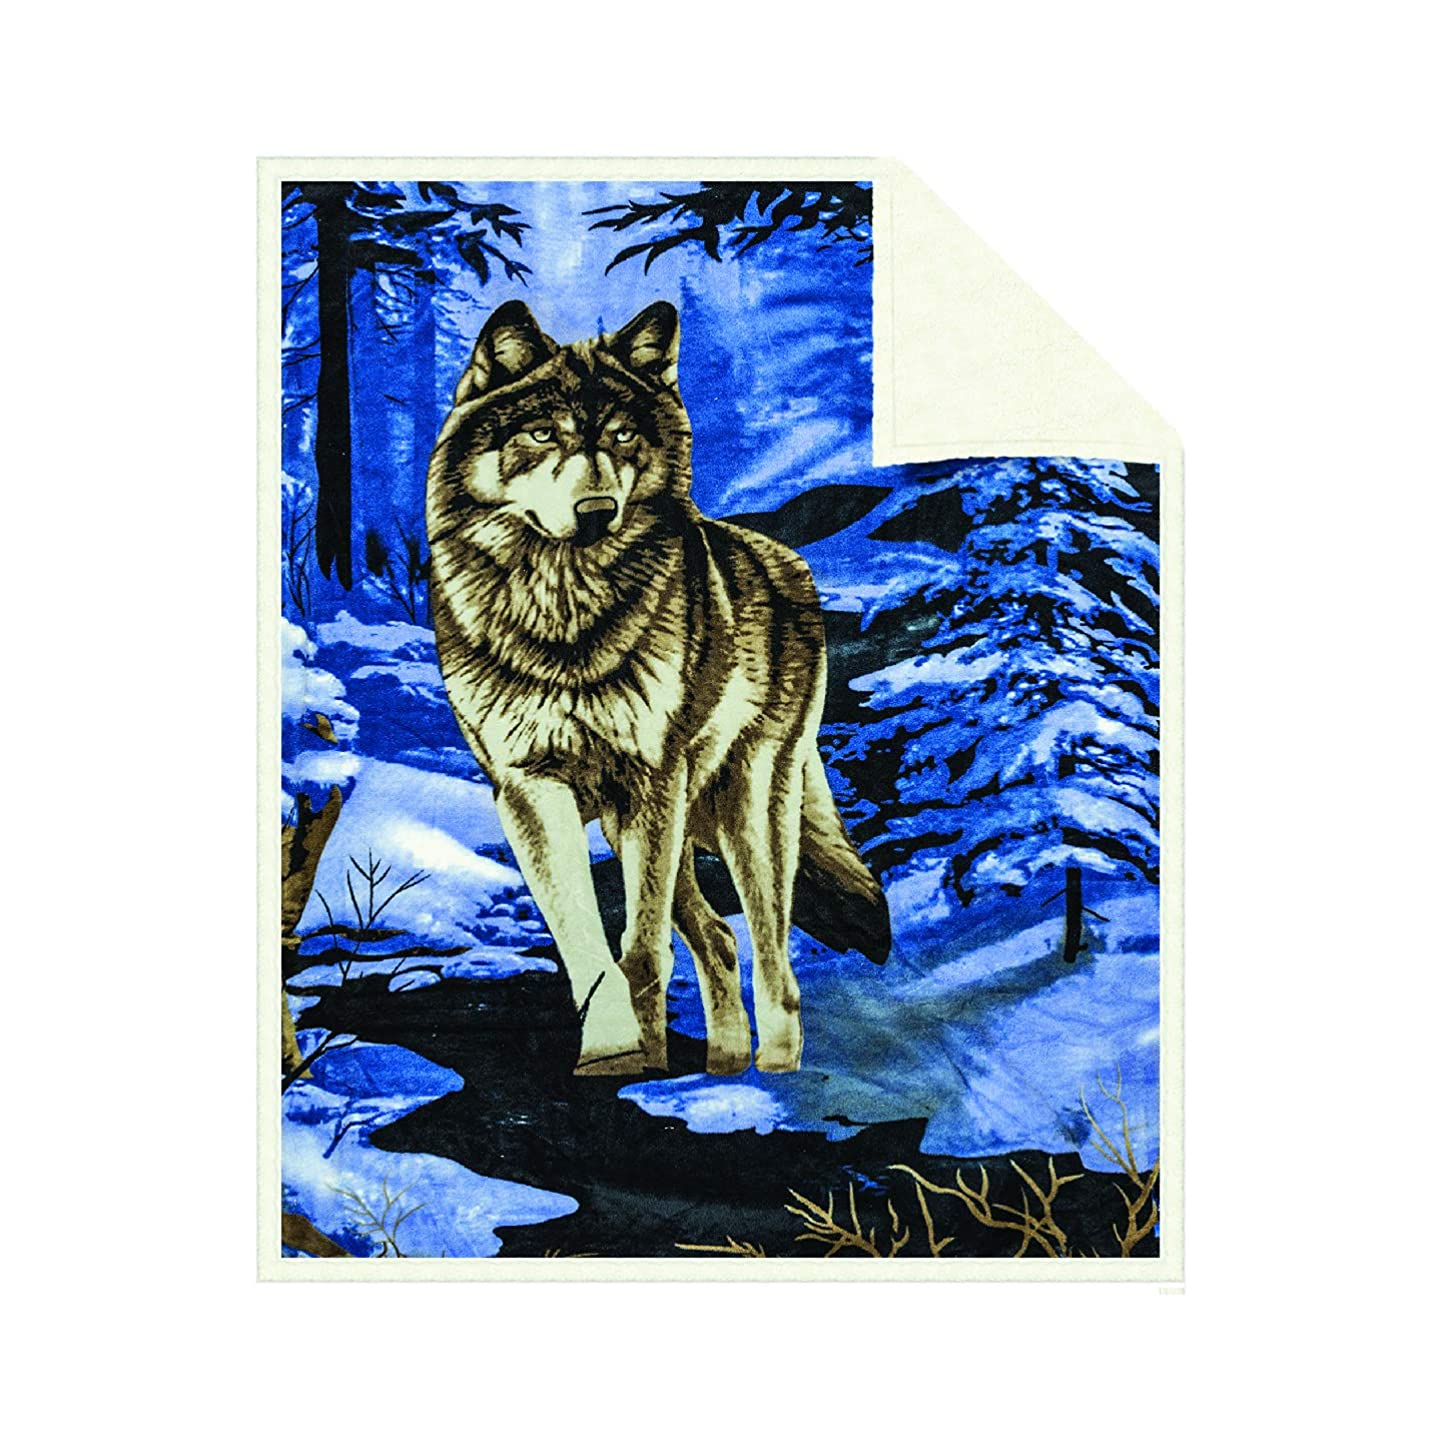 Fleece Sherpa Receiving Baby Blanket - Boys Girls Thick Soft Poly Double Layer Plush Minky Comfy Blankets for Infants Toddlers & Pets with Printed Blue Wolf Imagery Throws Size 30